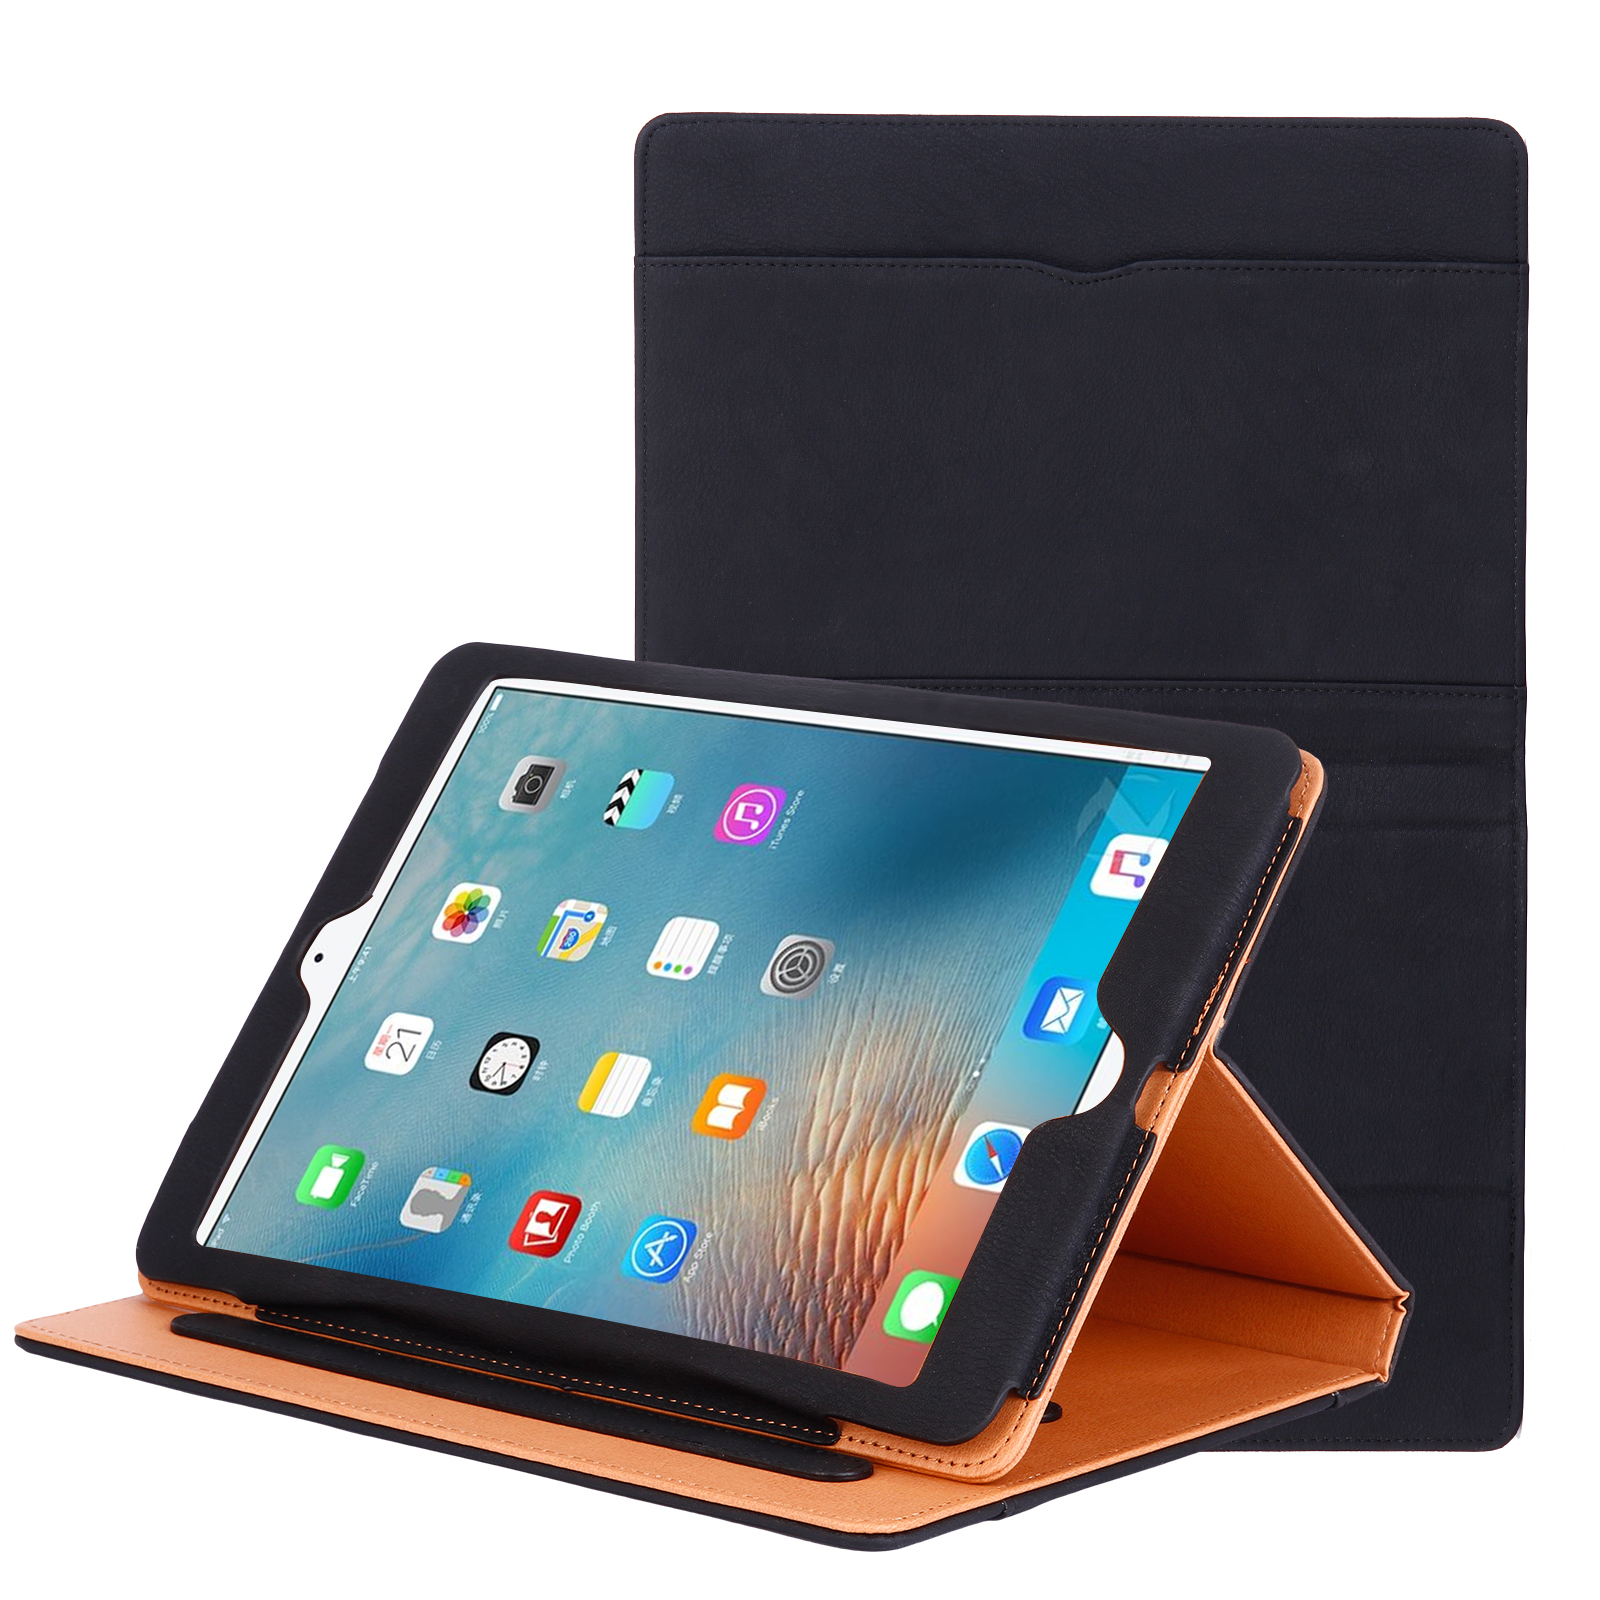 10.5-Inch and 12.9-Inch iPad Pro Models Gain All-New ...